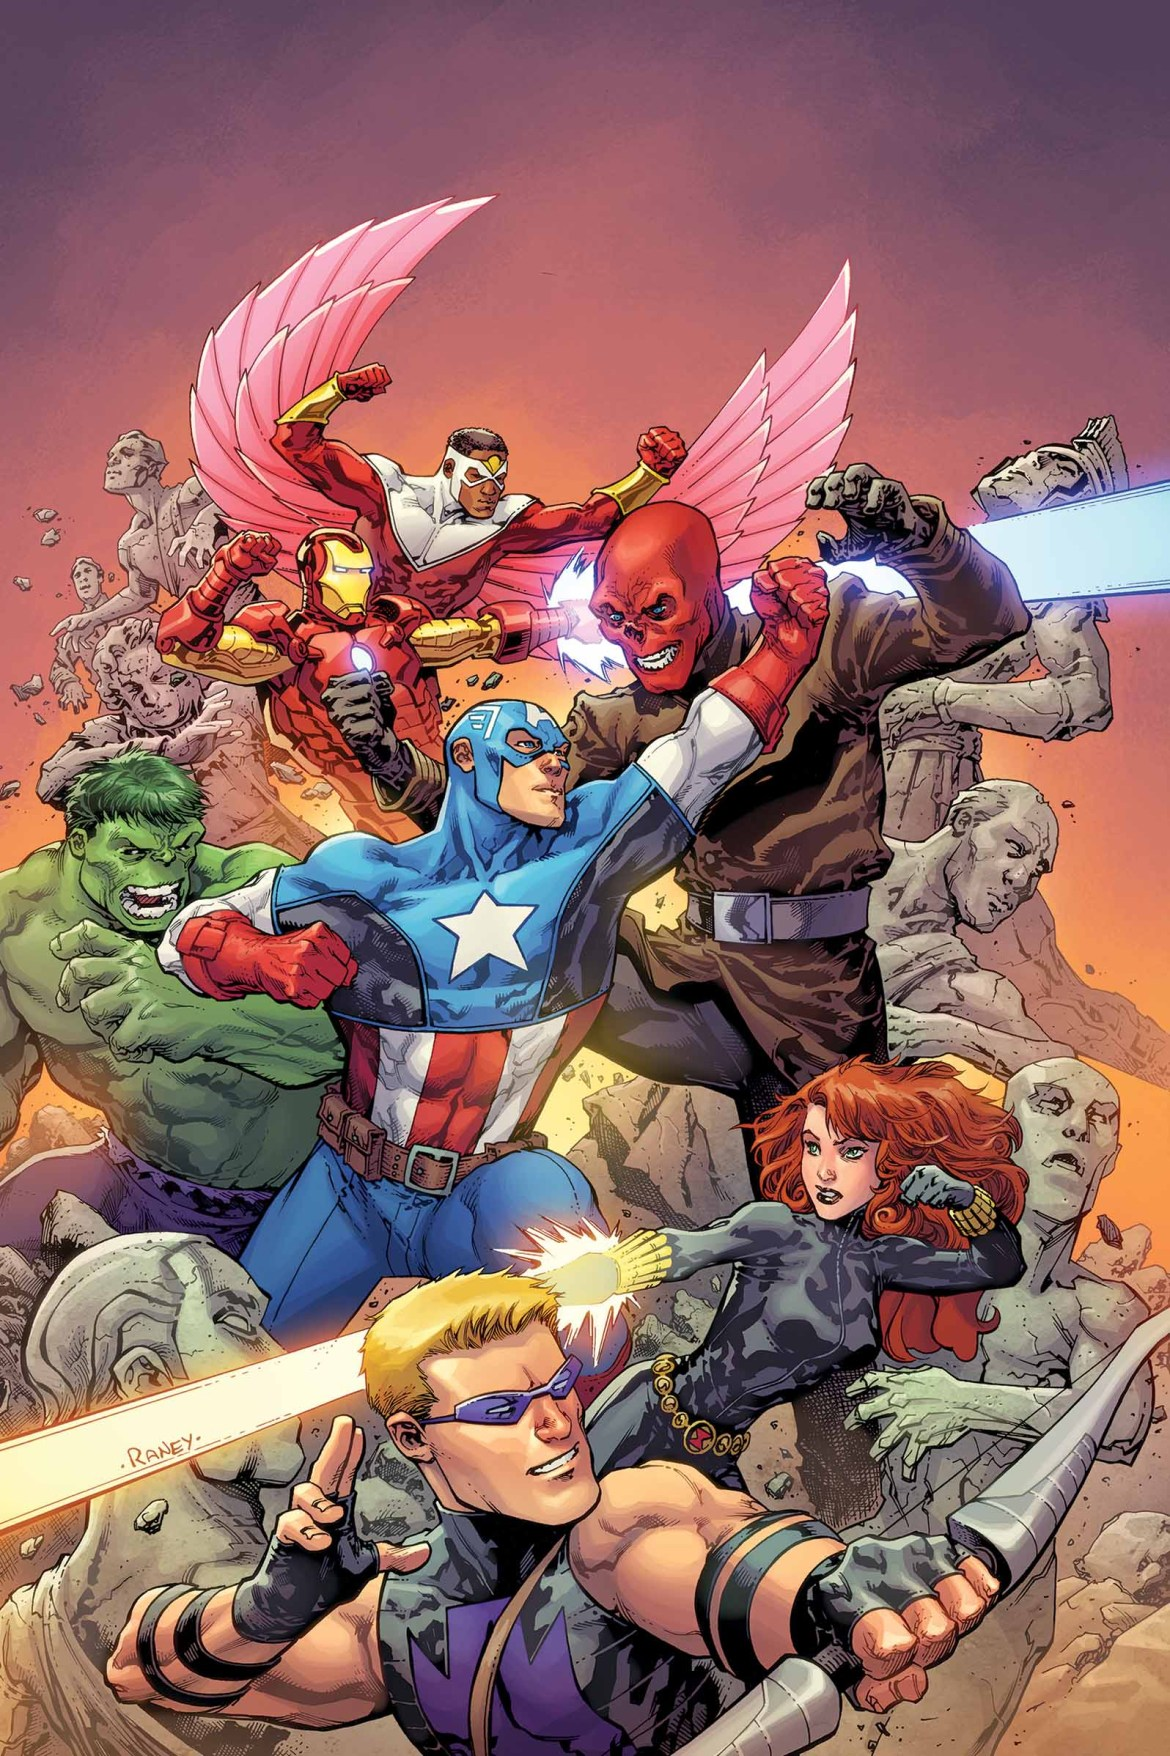 Avengers_VS_1_Cover The action never ends until it does in AVENGERS VS #1